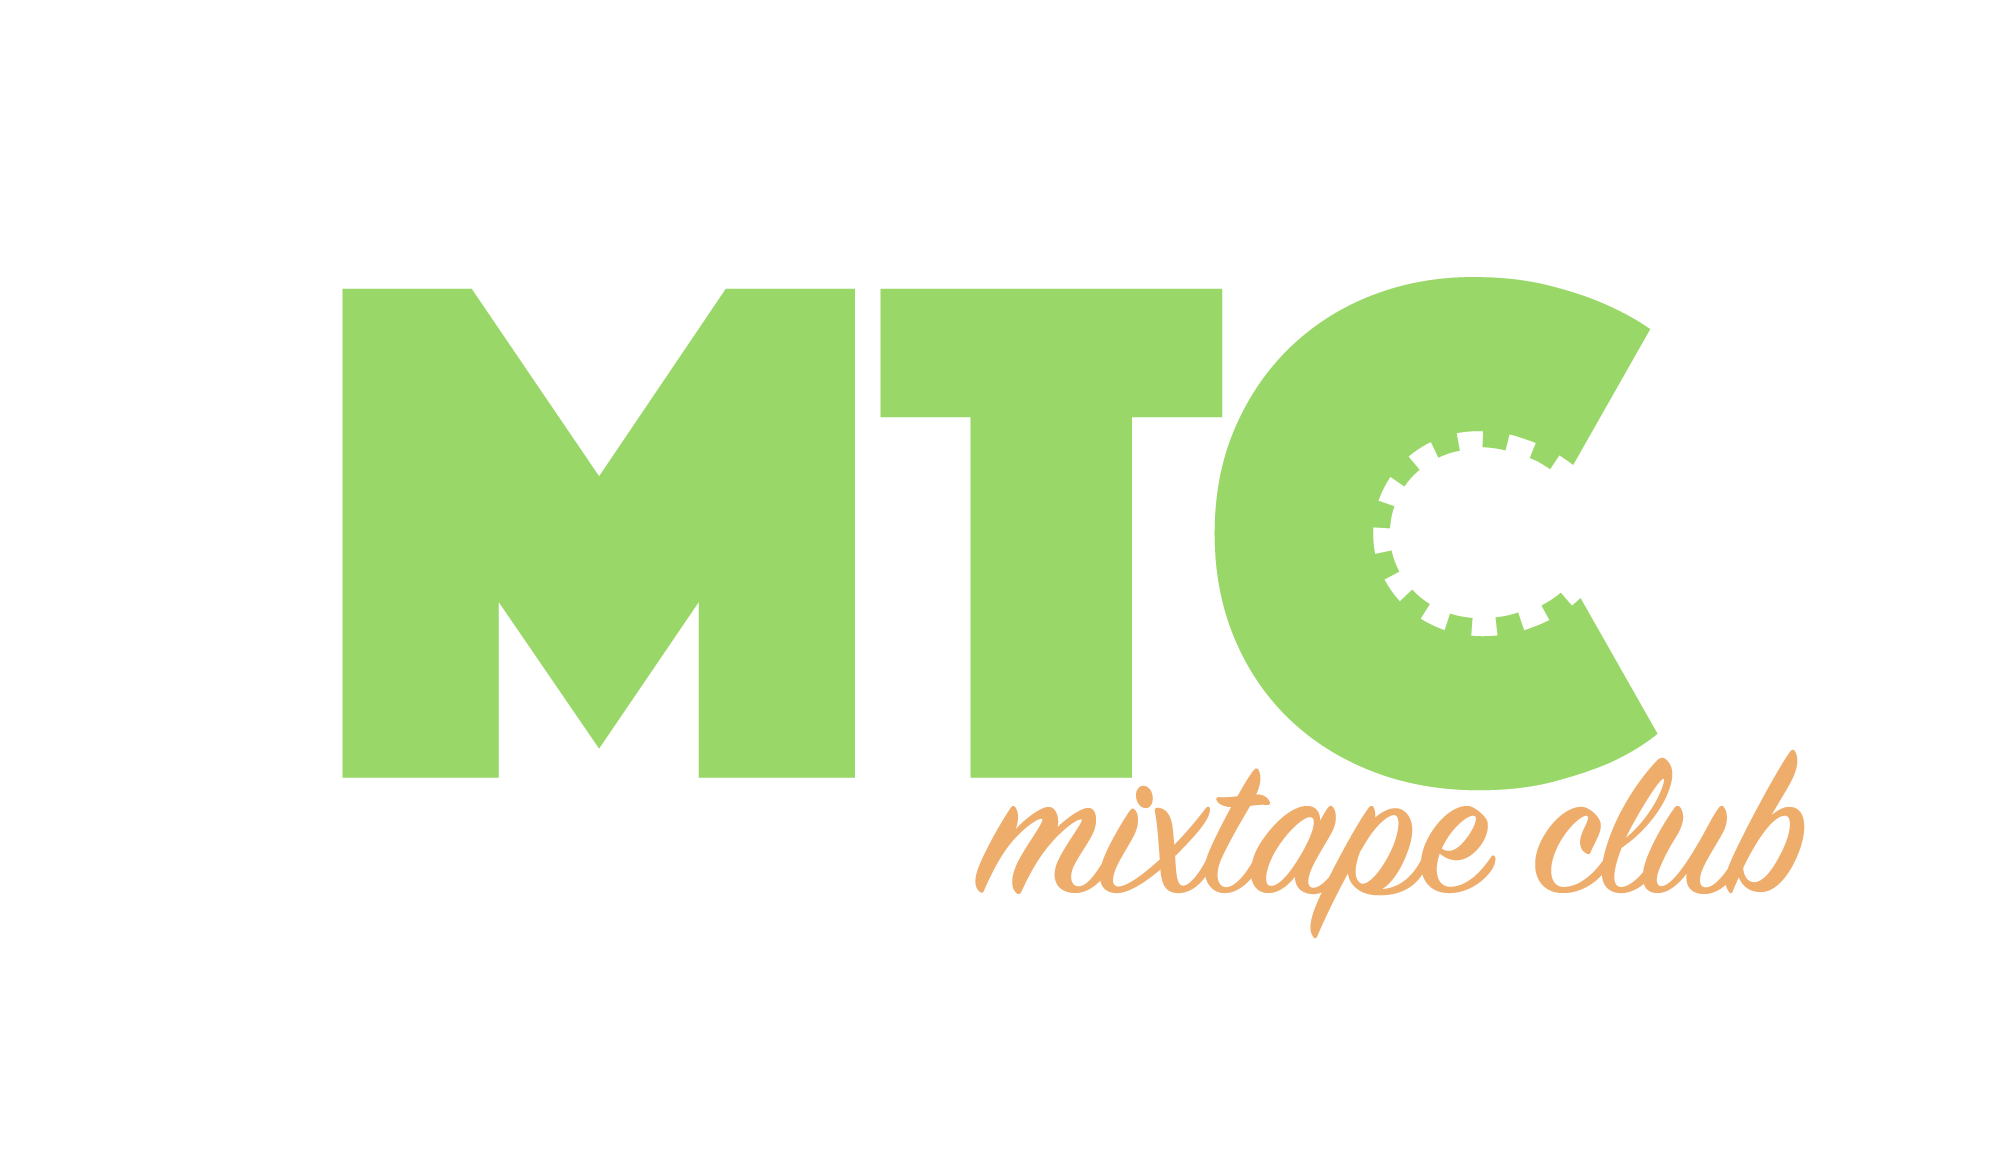 MixTape Club logo